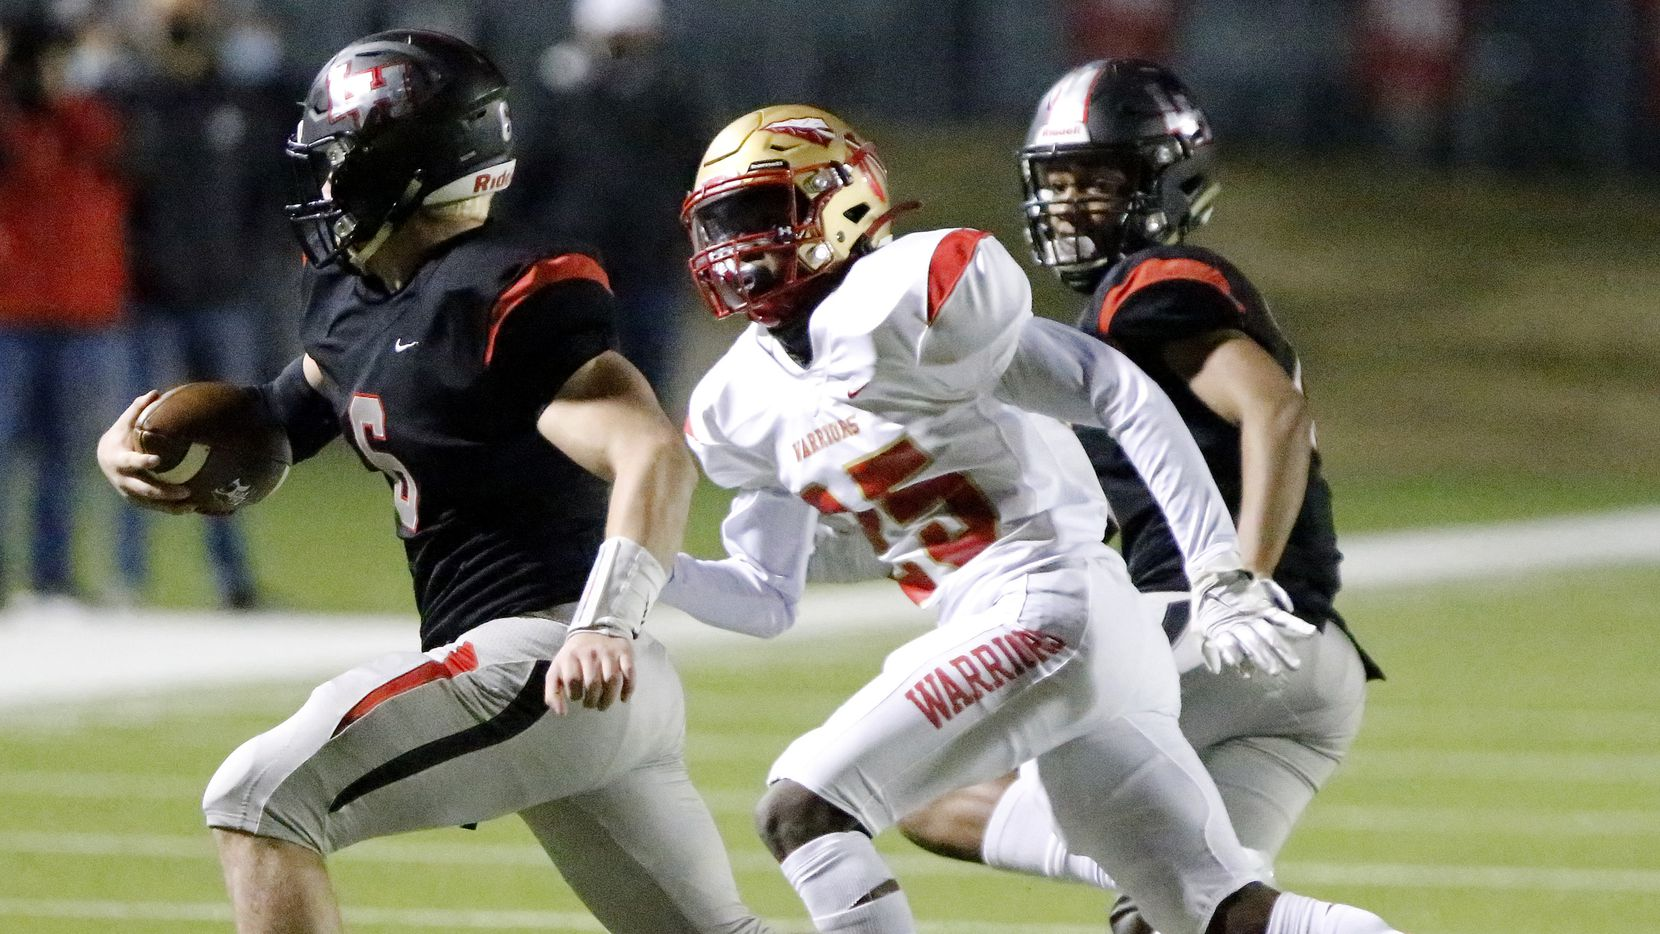 Lake Highlands High School quarterback Mitch Coulson (6) is tackled by South Grand Prairie High School defensive back Darius Carmouche (25) during the first half as Lake Highlands High School hosted South Grand Prairie High School at Wildcat-Ram Stadium in Dallas on Friday night, December 11, 2020.